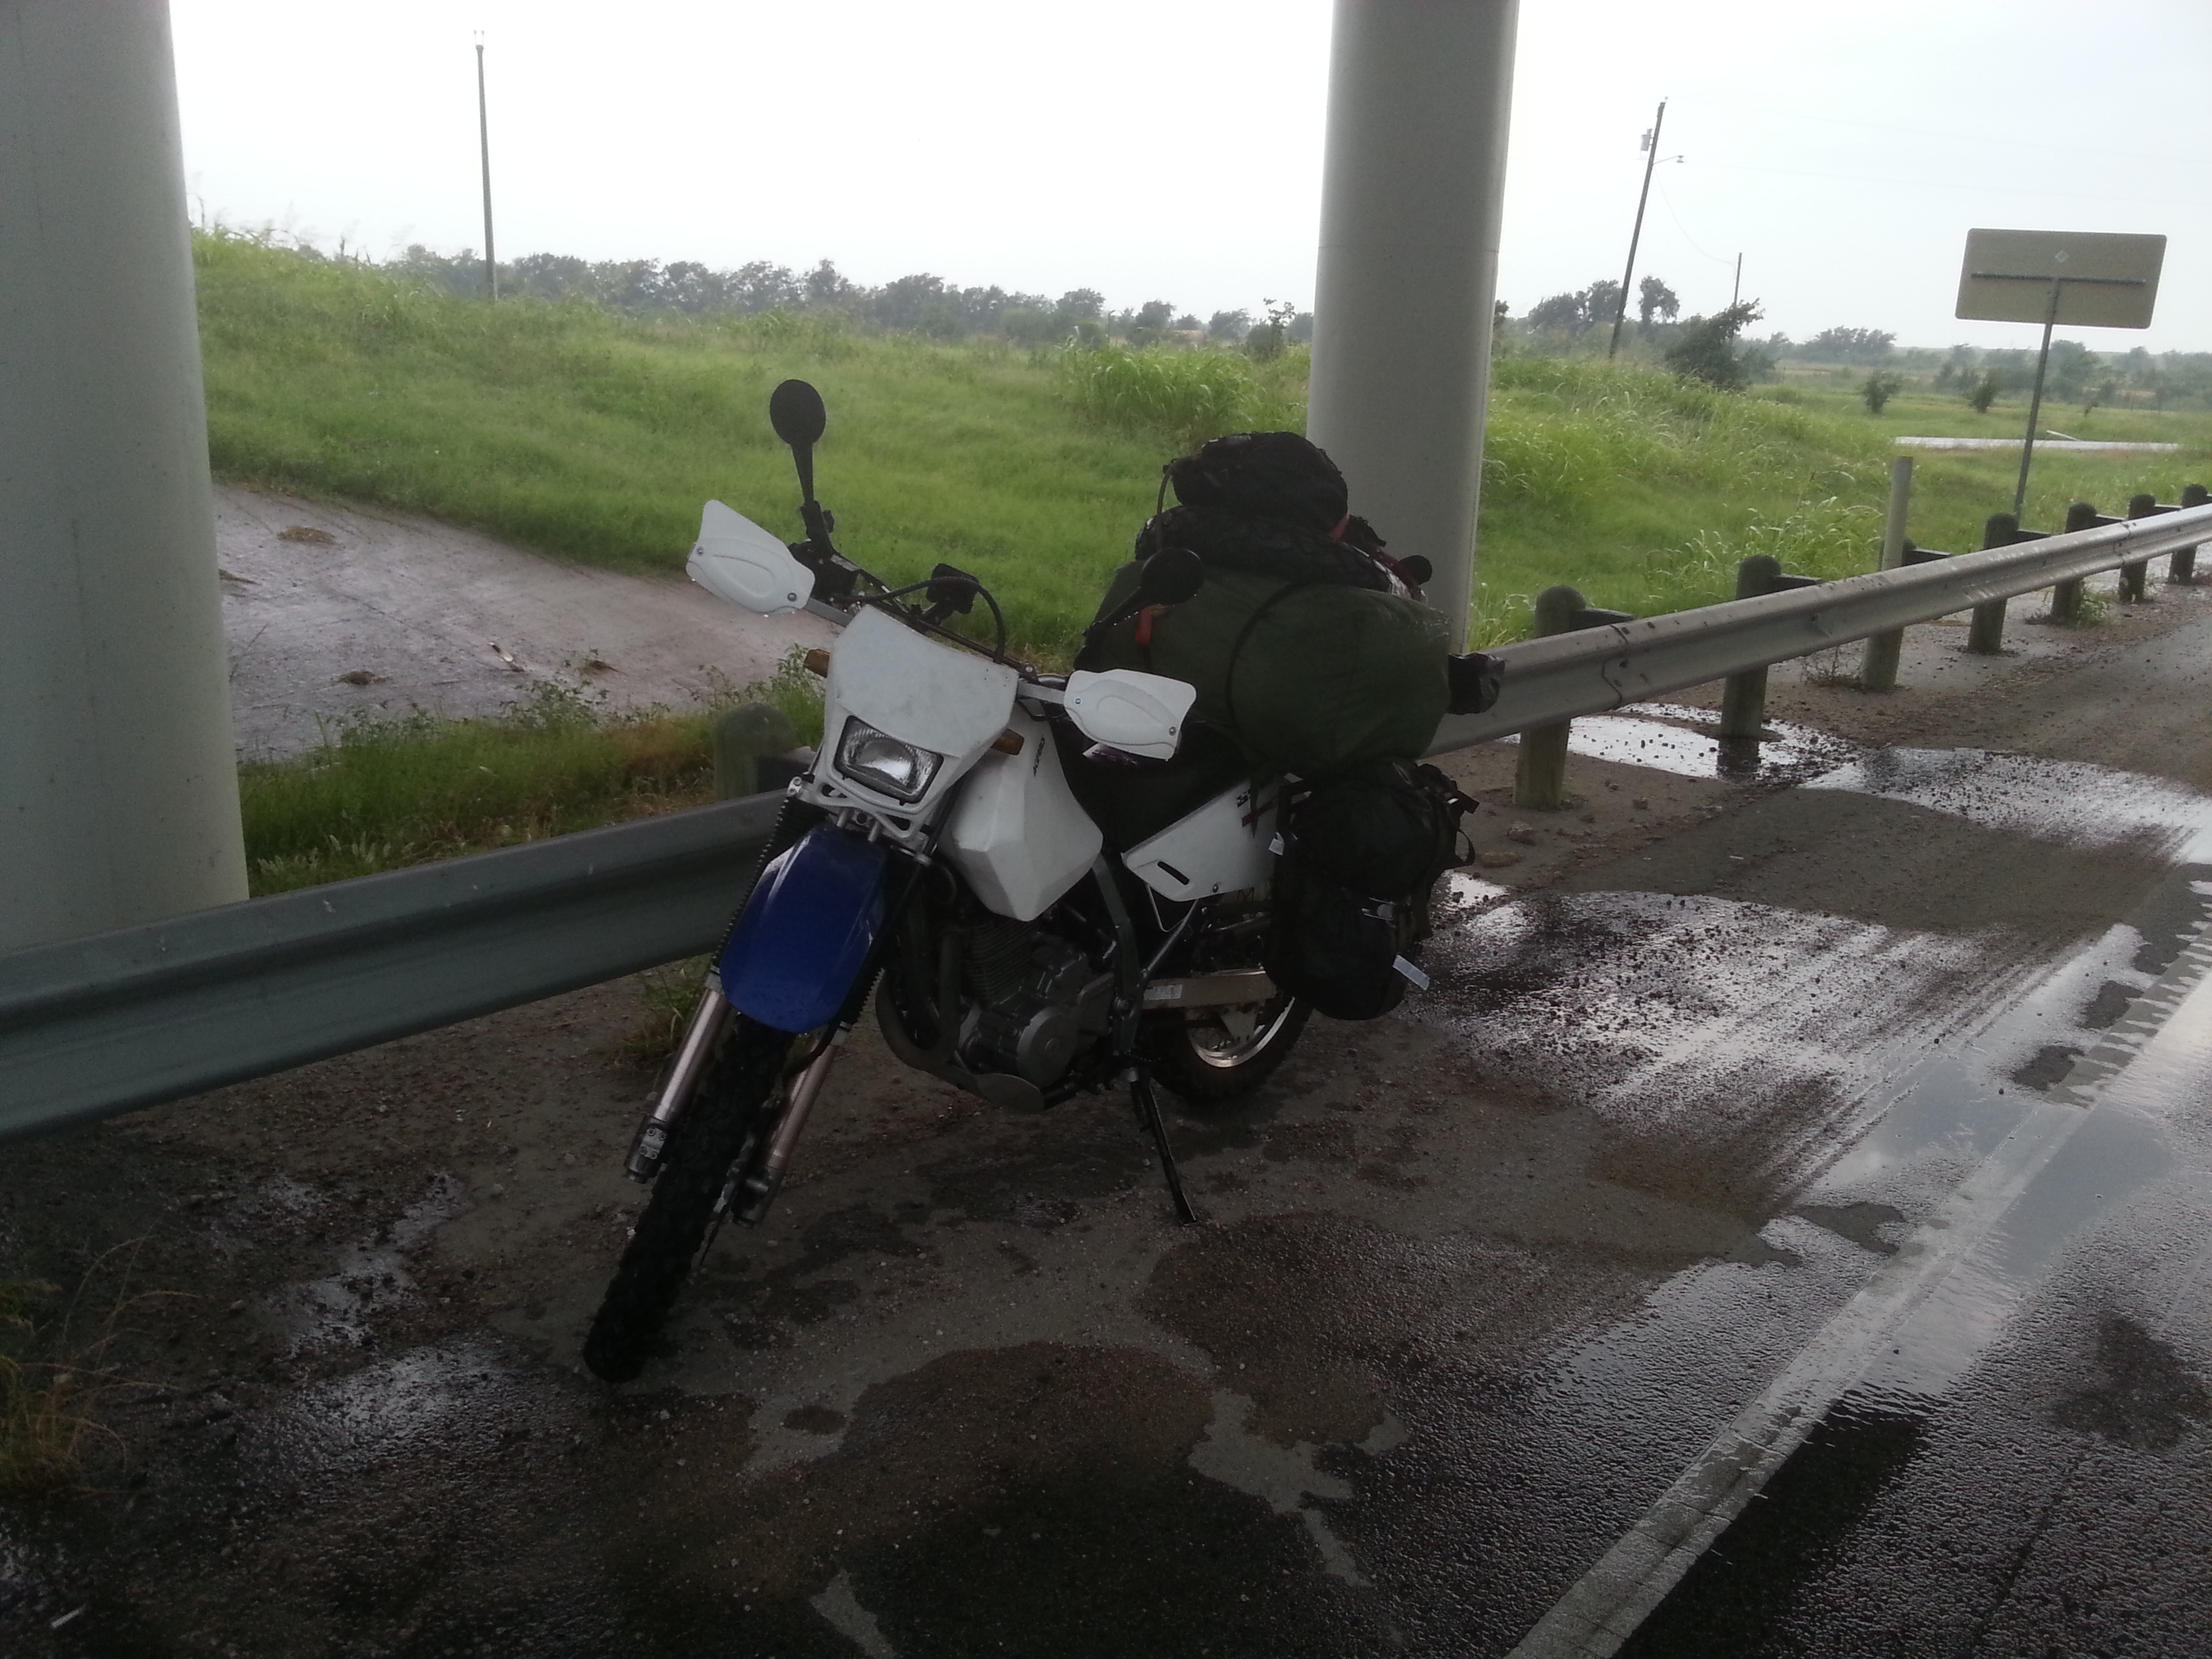 Stopped under an overpass near Midlothian, TX to put on rain gear